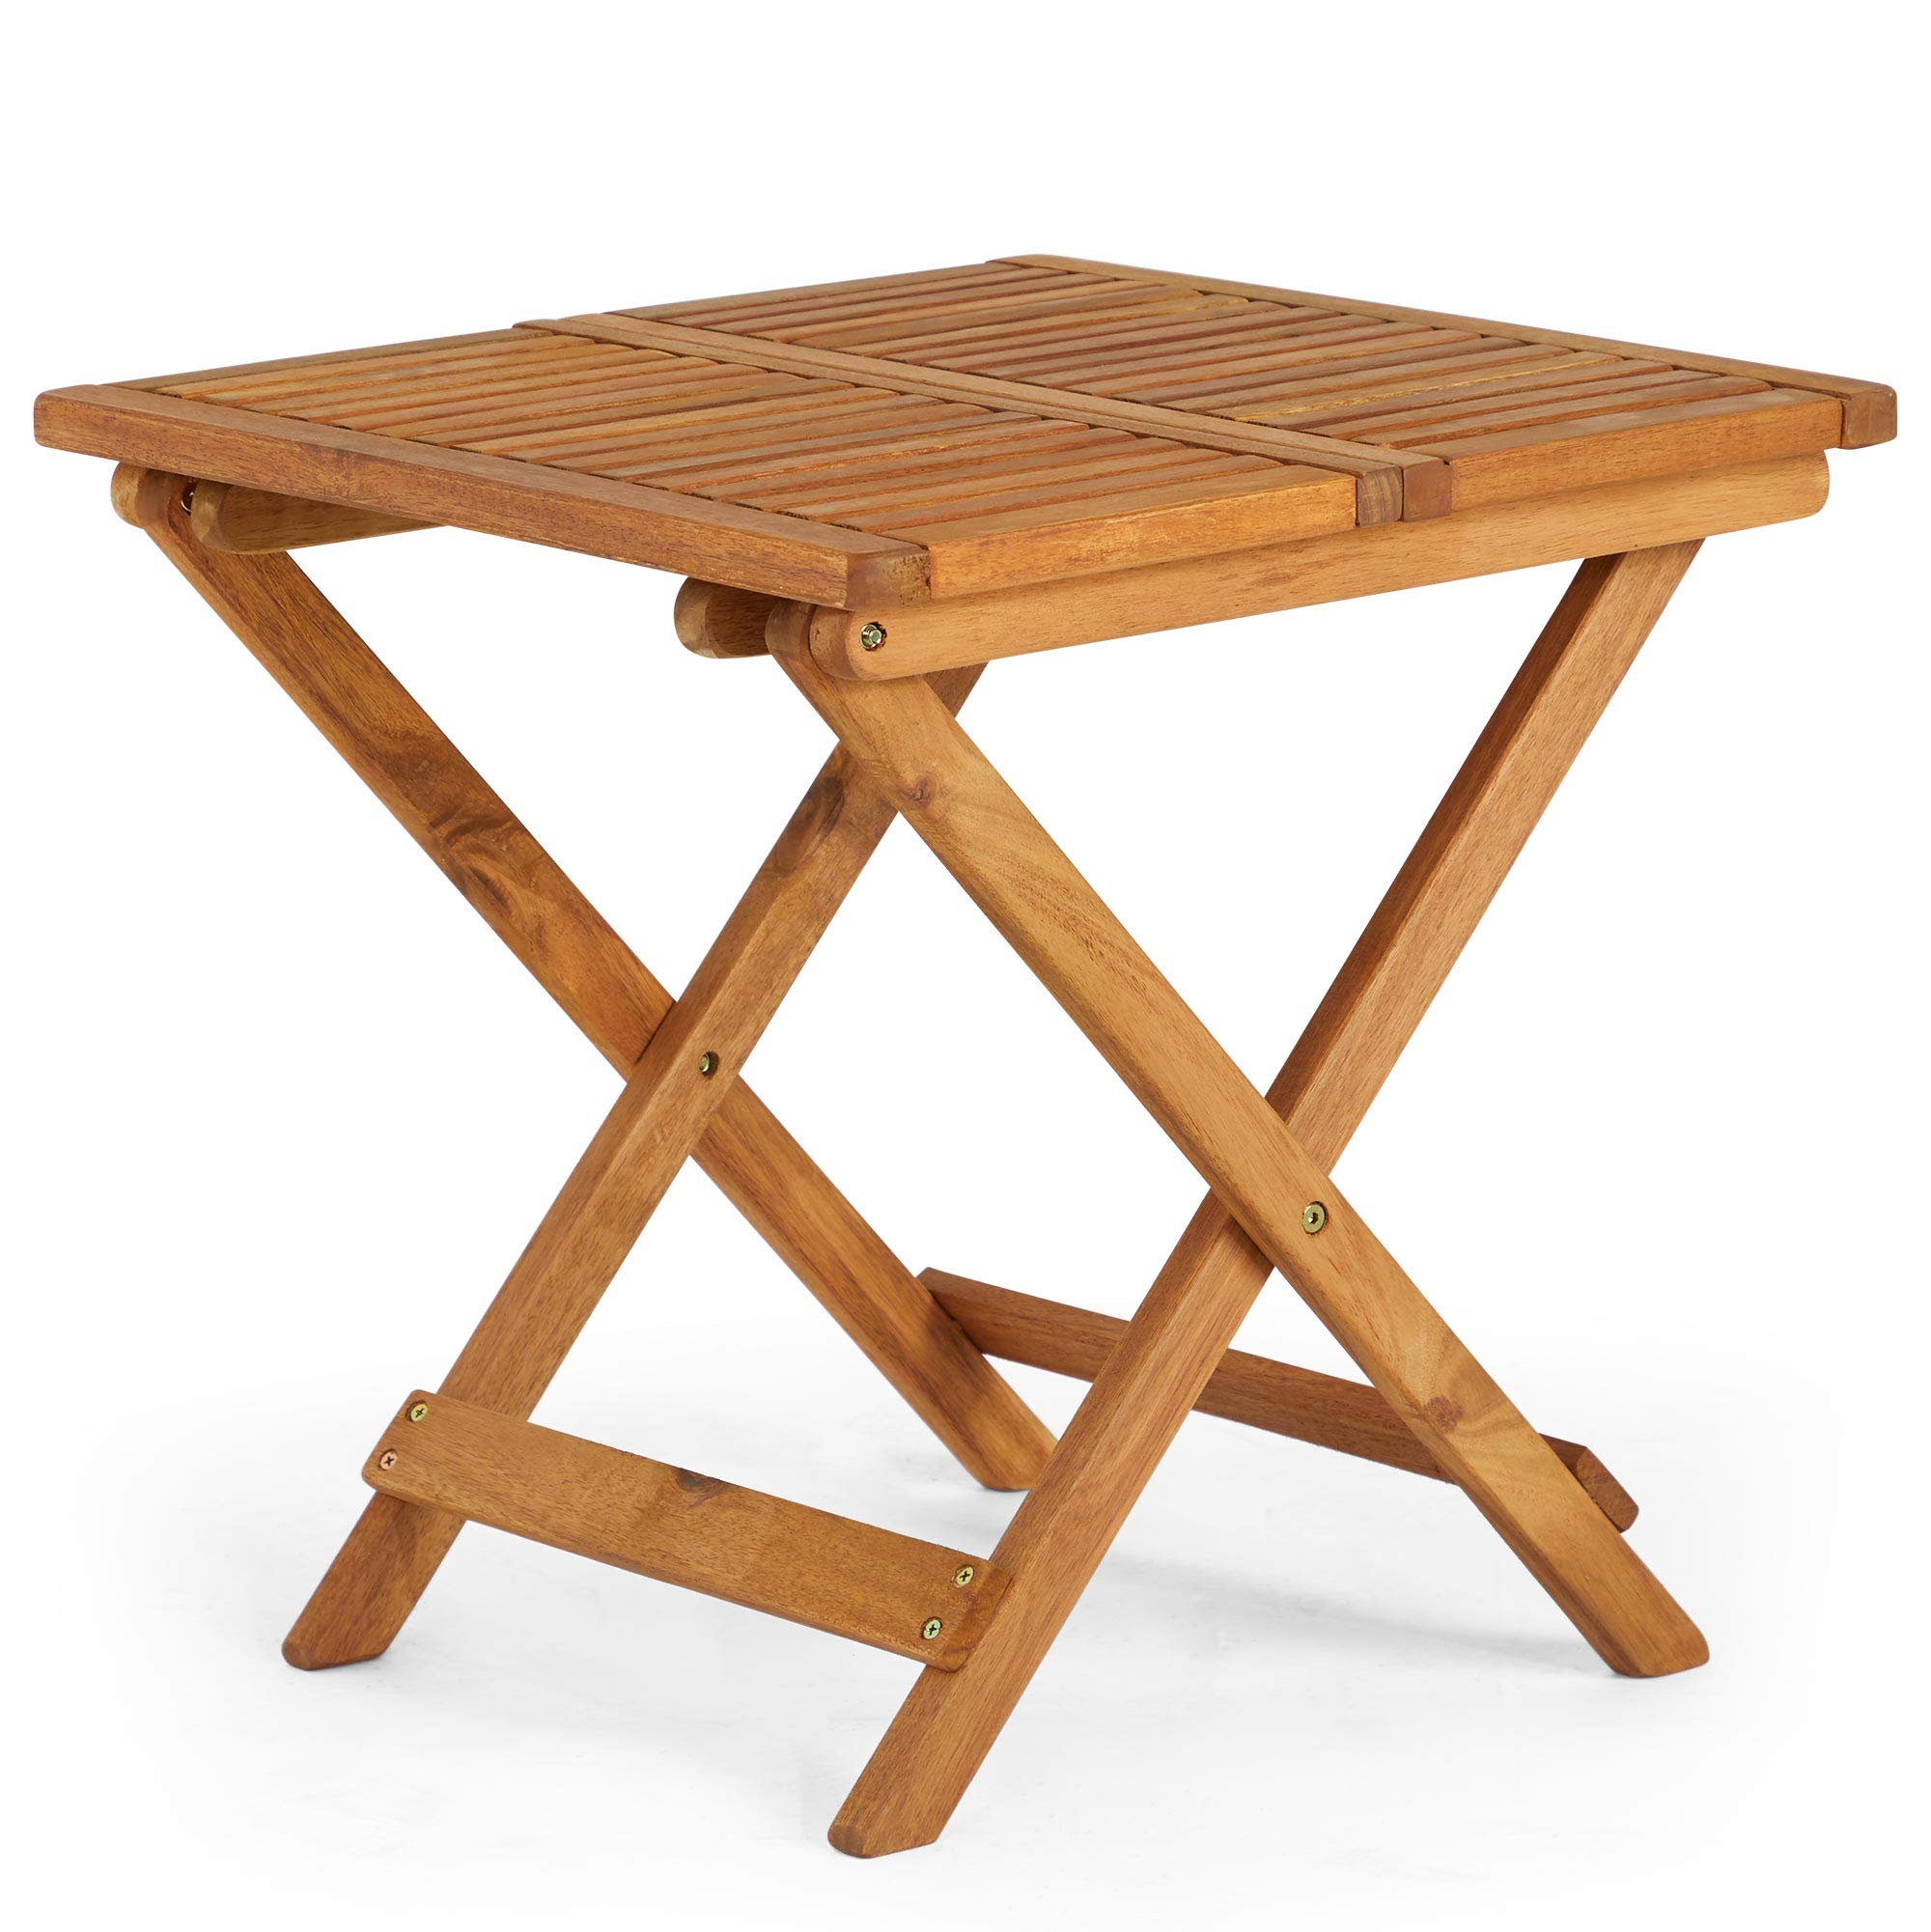 Adige Folding Table Small Garden or Camping Table Ideal as Side Table